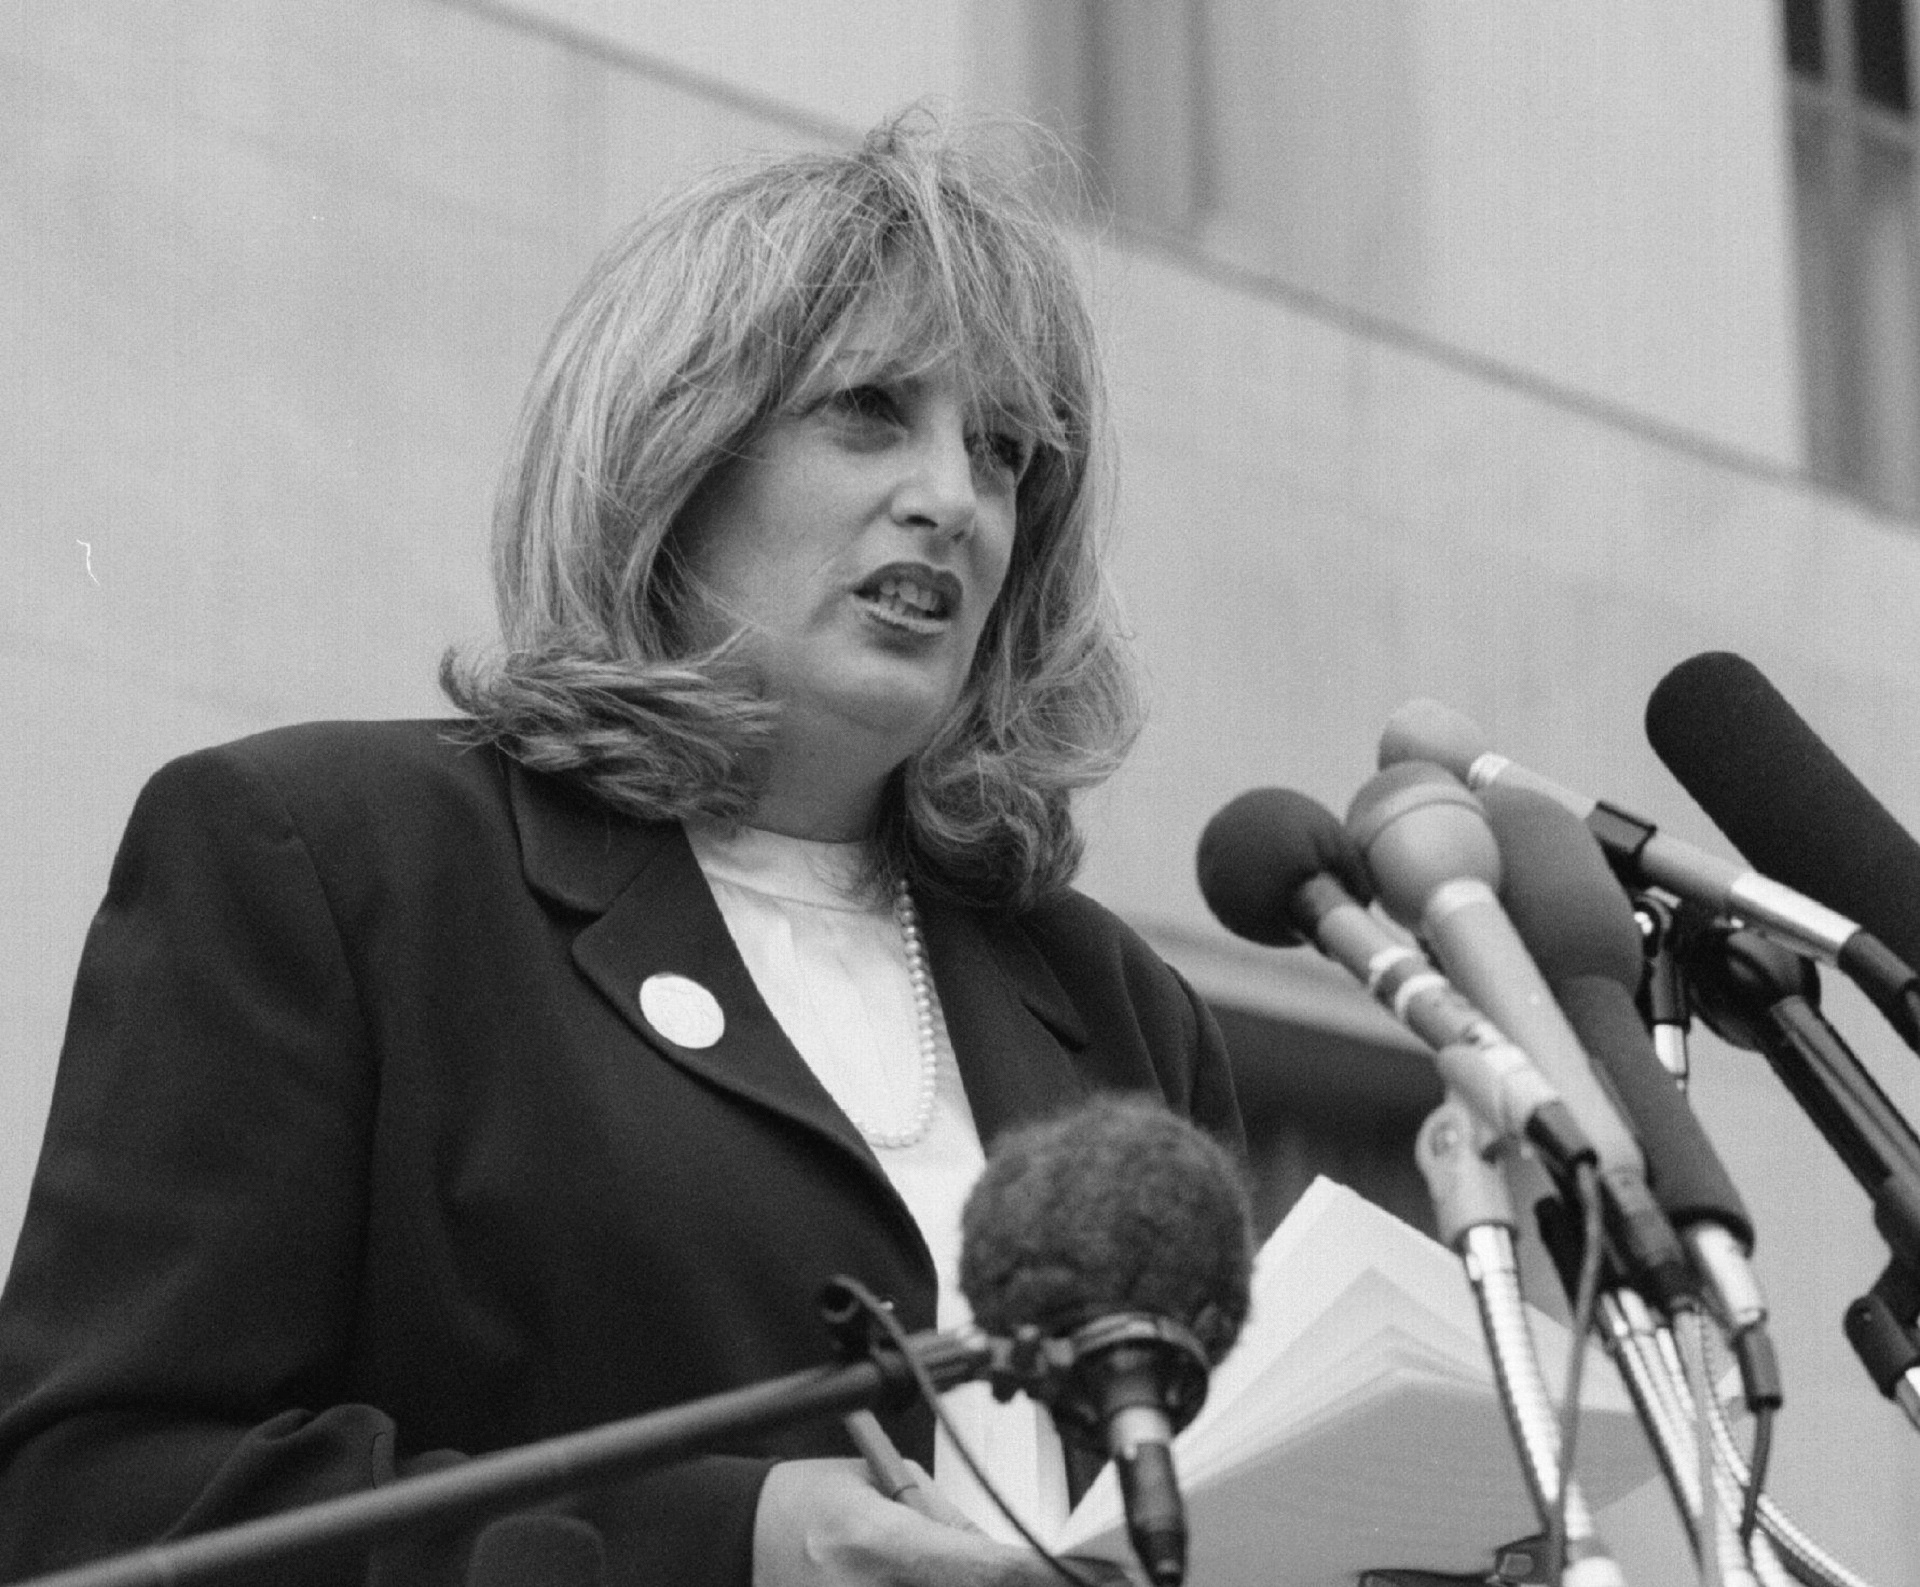 Linda Tripp, whistleblower in the Clinton impeachment, dies at 70